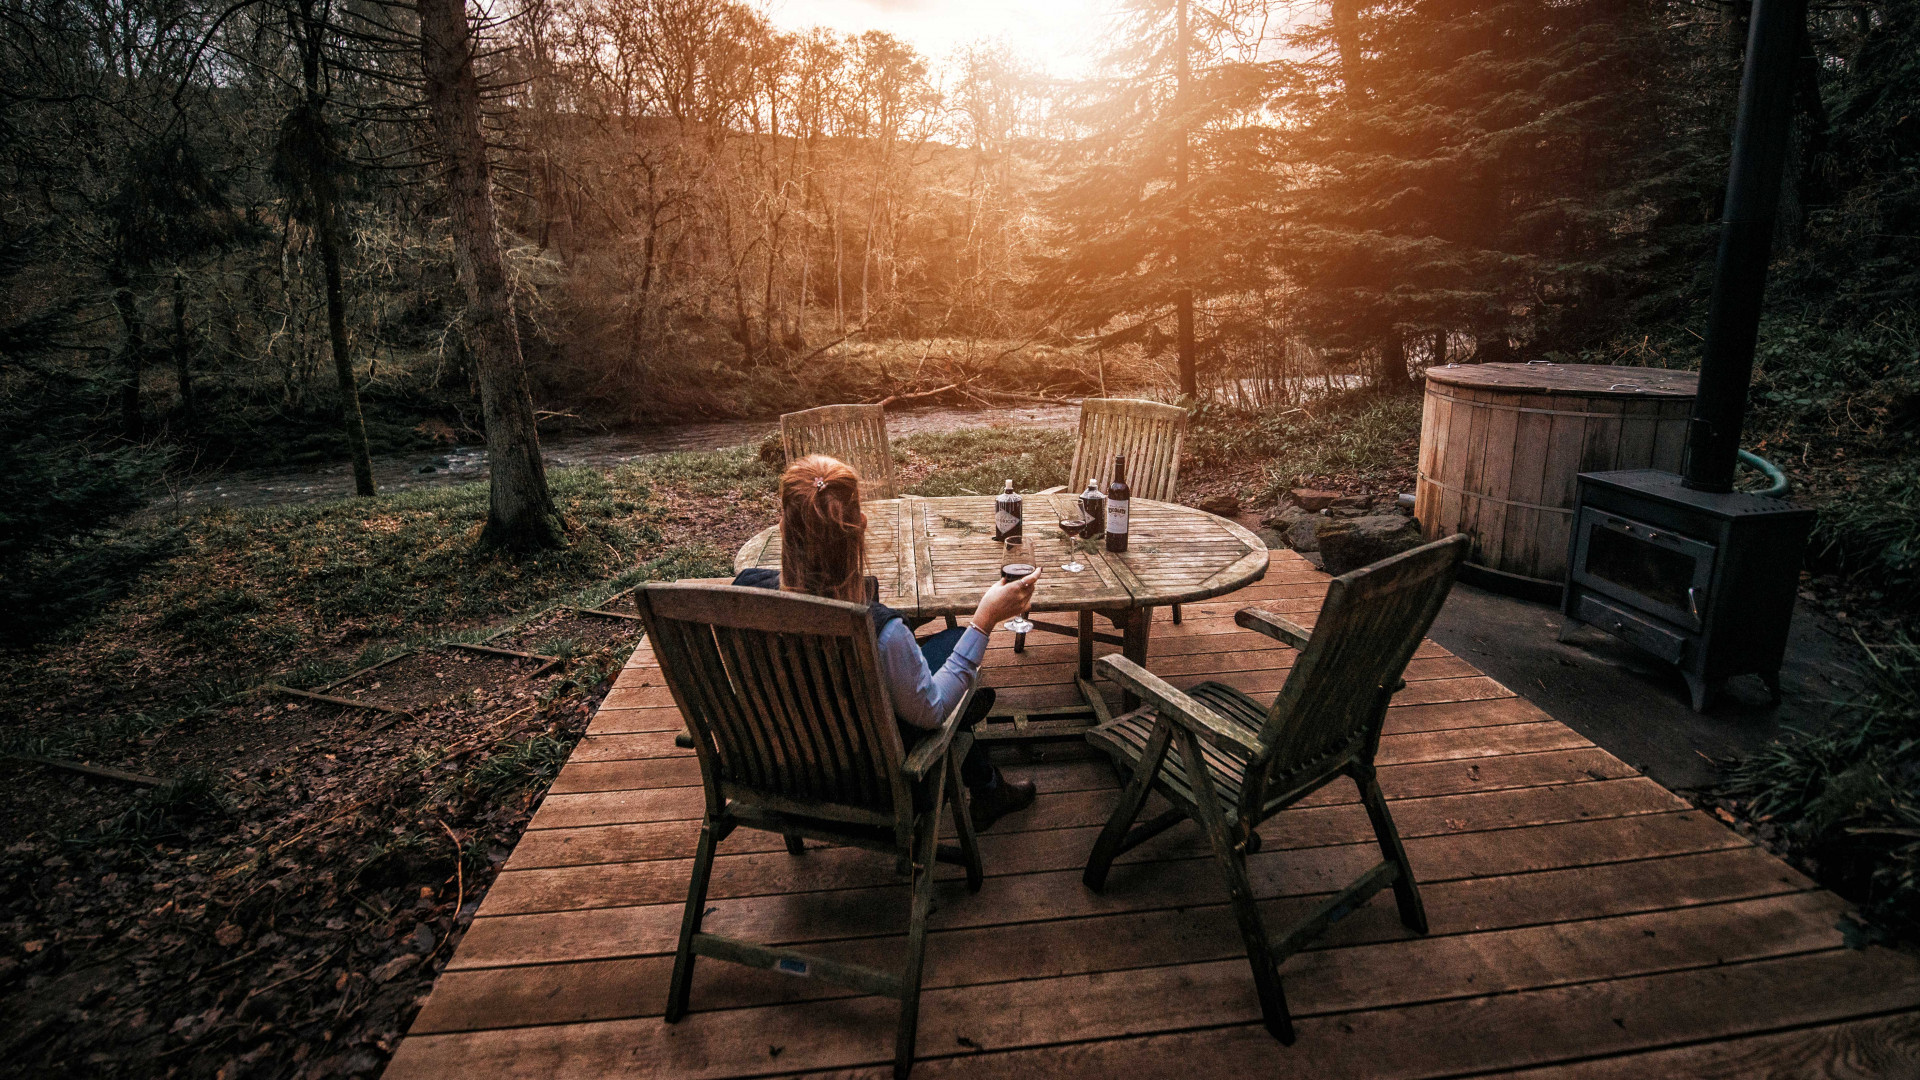 Best self-catering in the UK: Wood Cabin, Lake District, outdoor seating